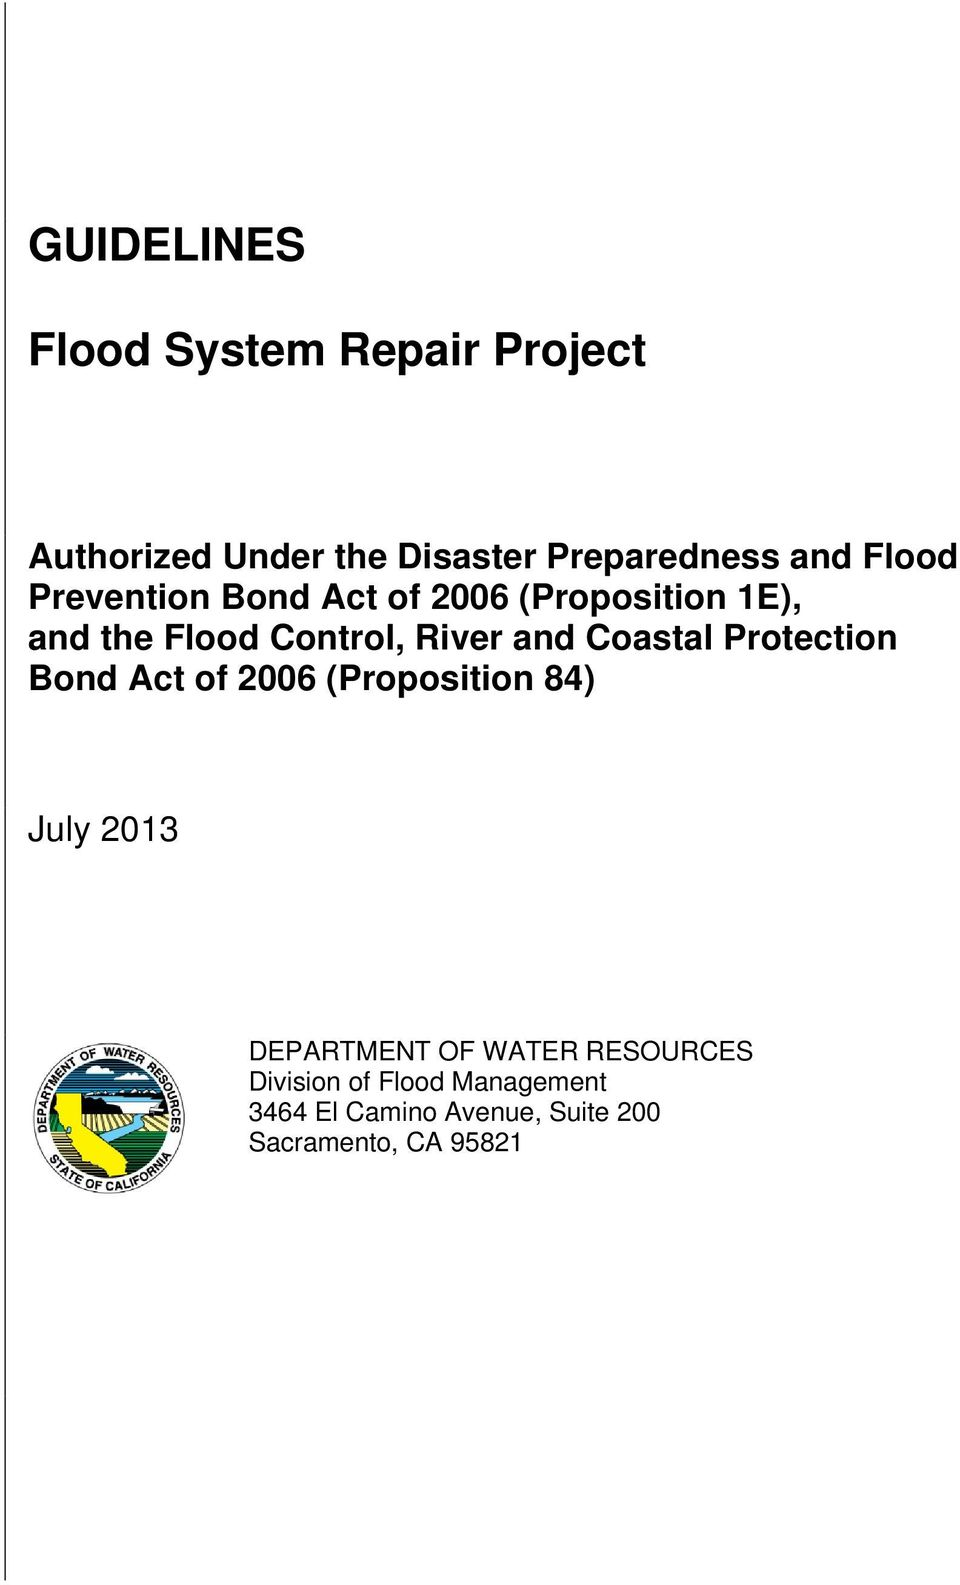 Coastal Protection Bond Act of 2006 (Proposition 84) July 2013 DEPARTMENT OF WATER